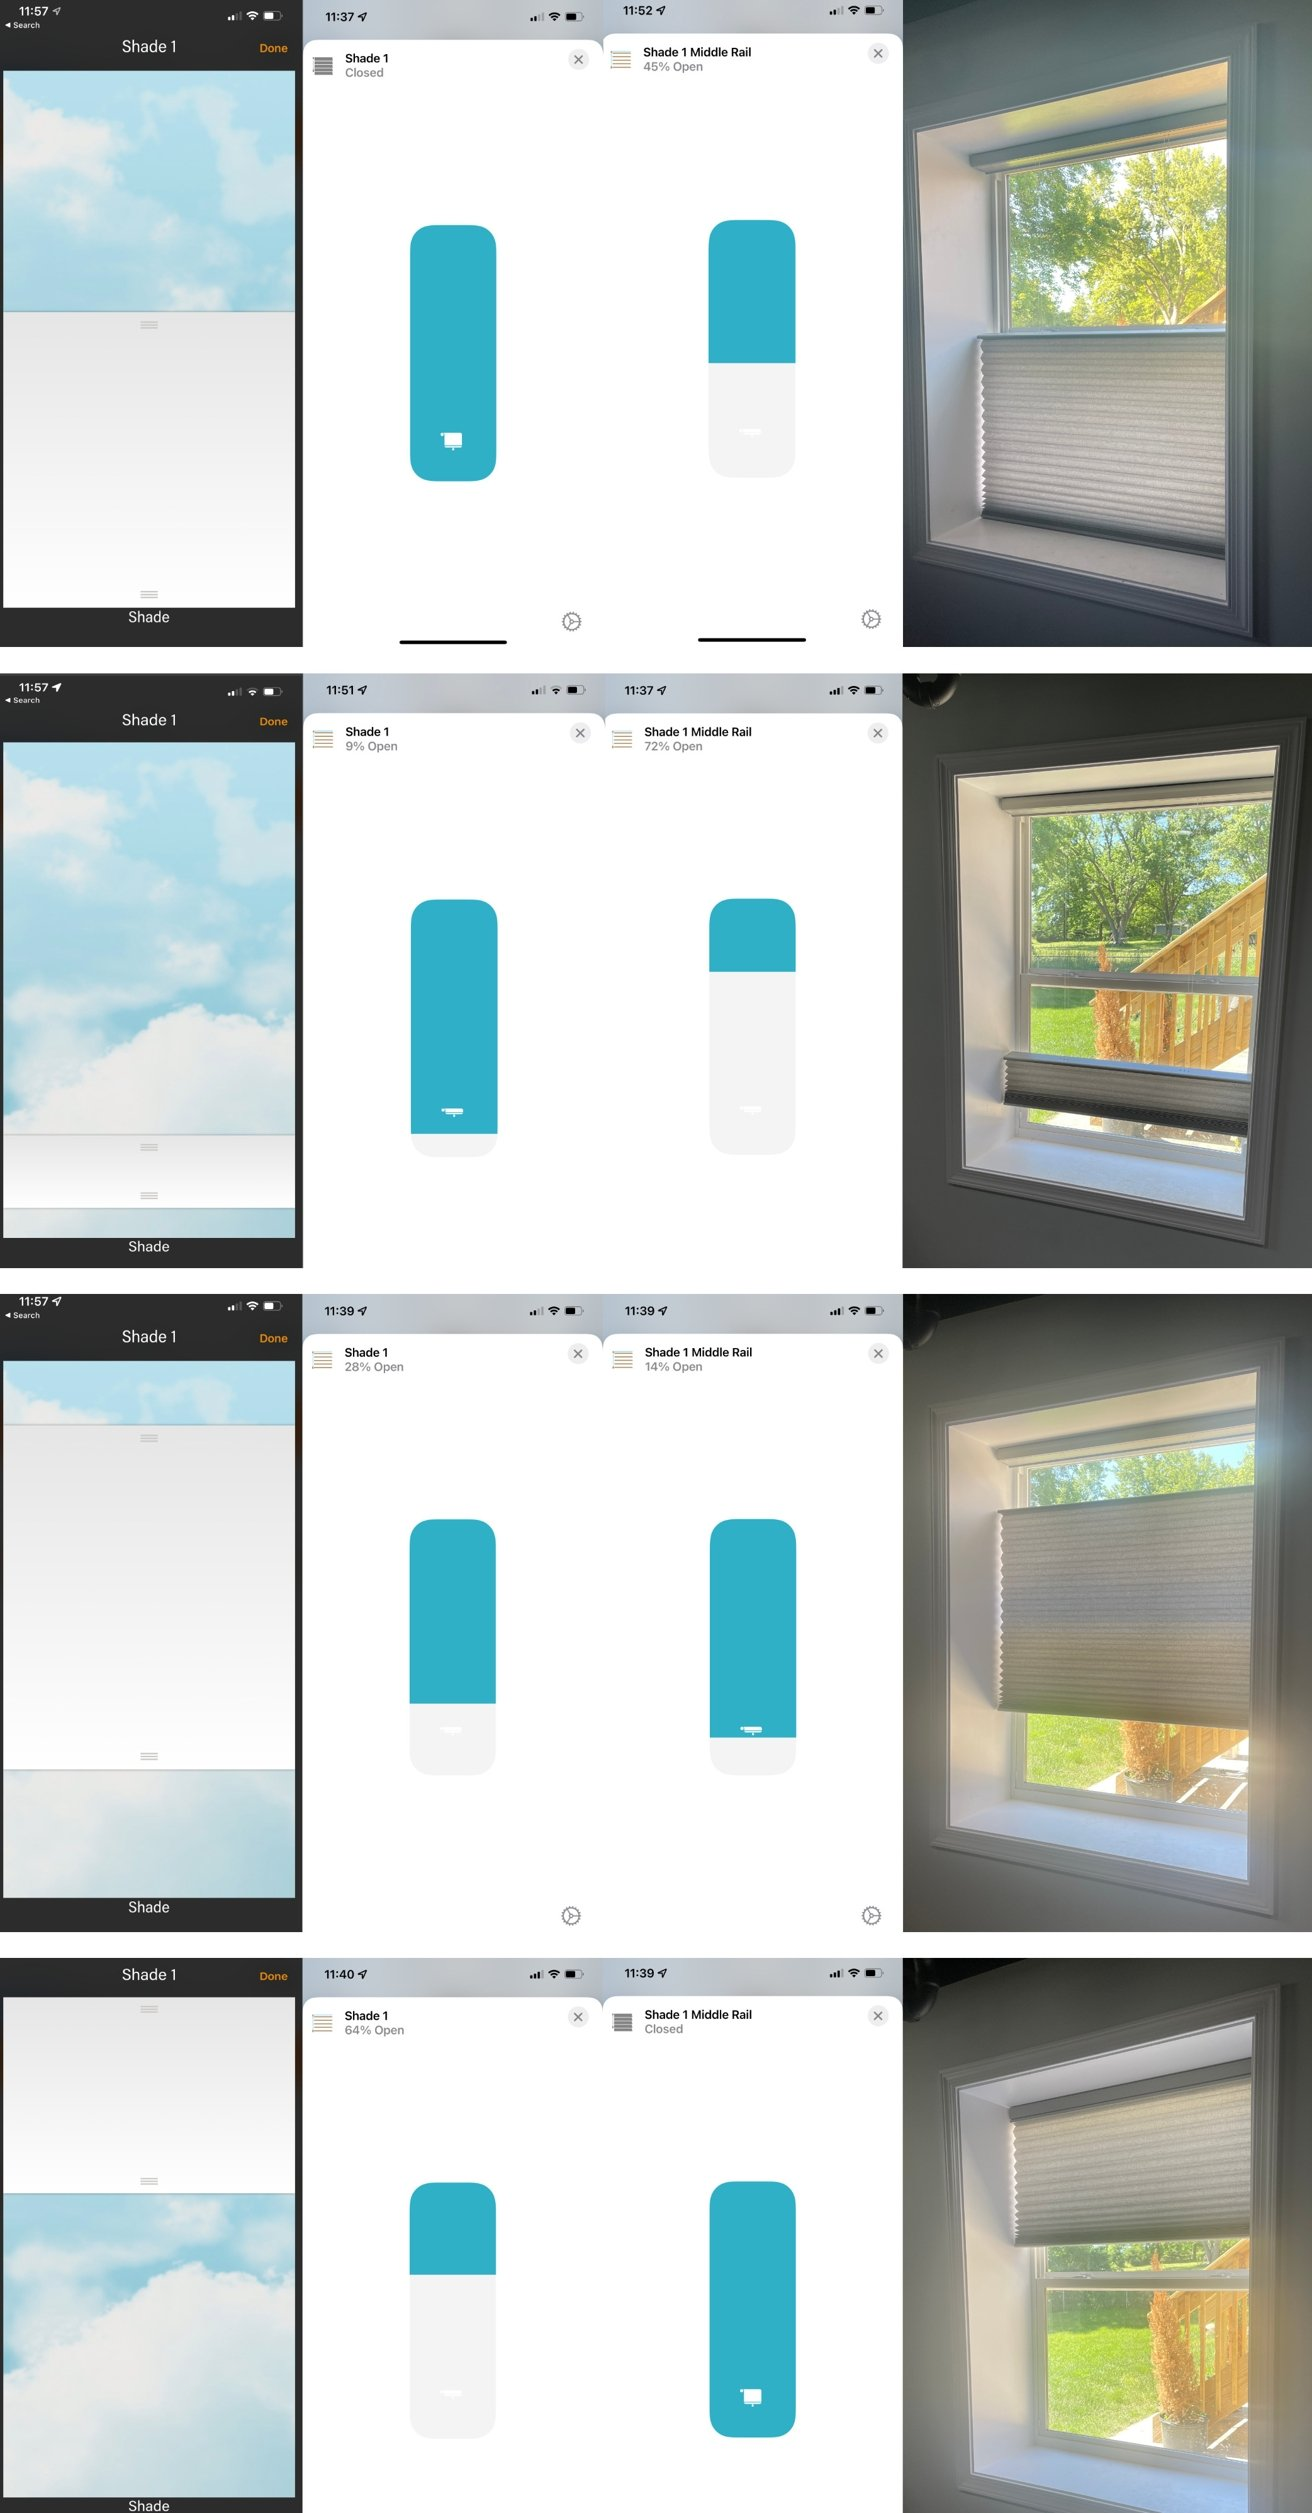 Examples of the PowerView app and Home app and how the shades look in real life